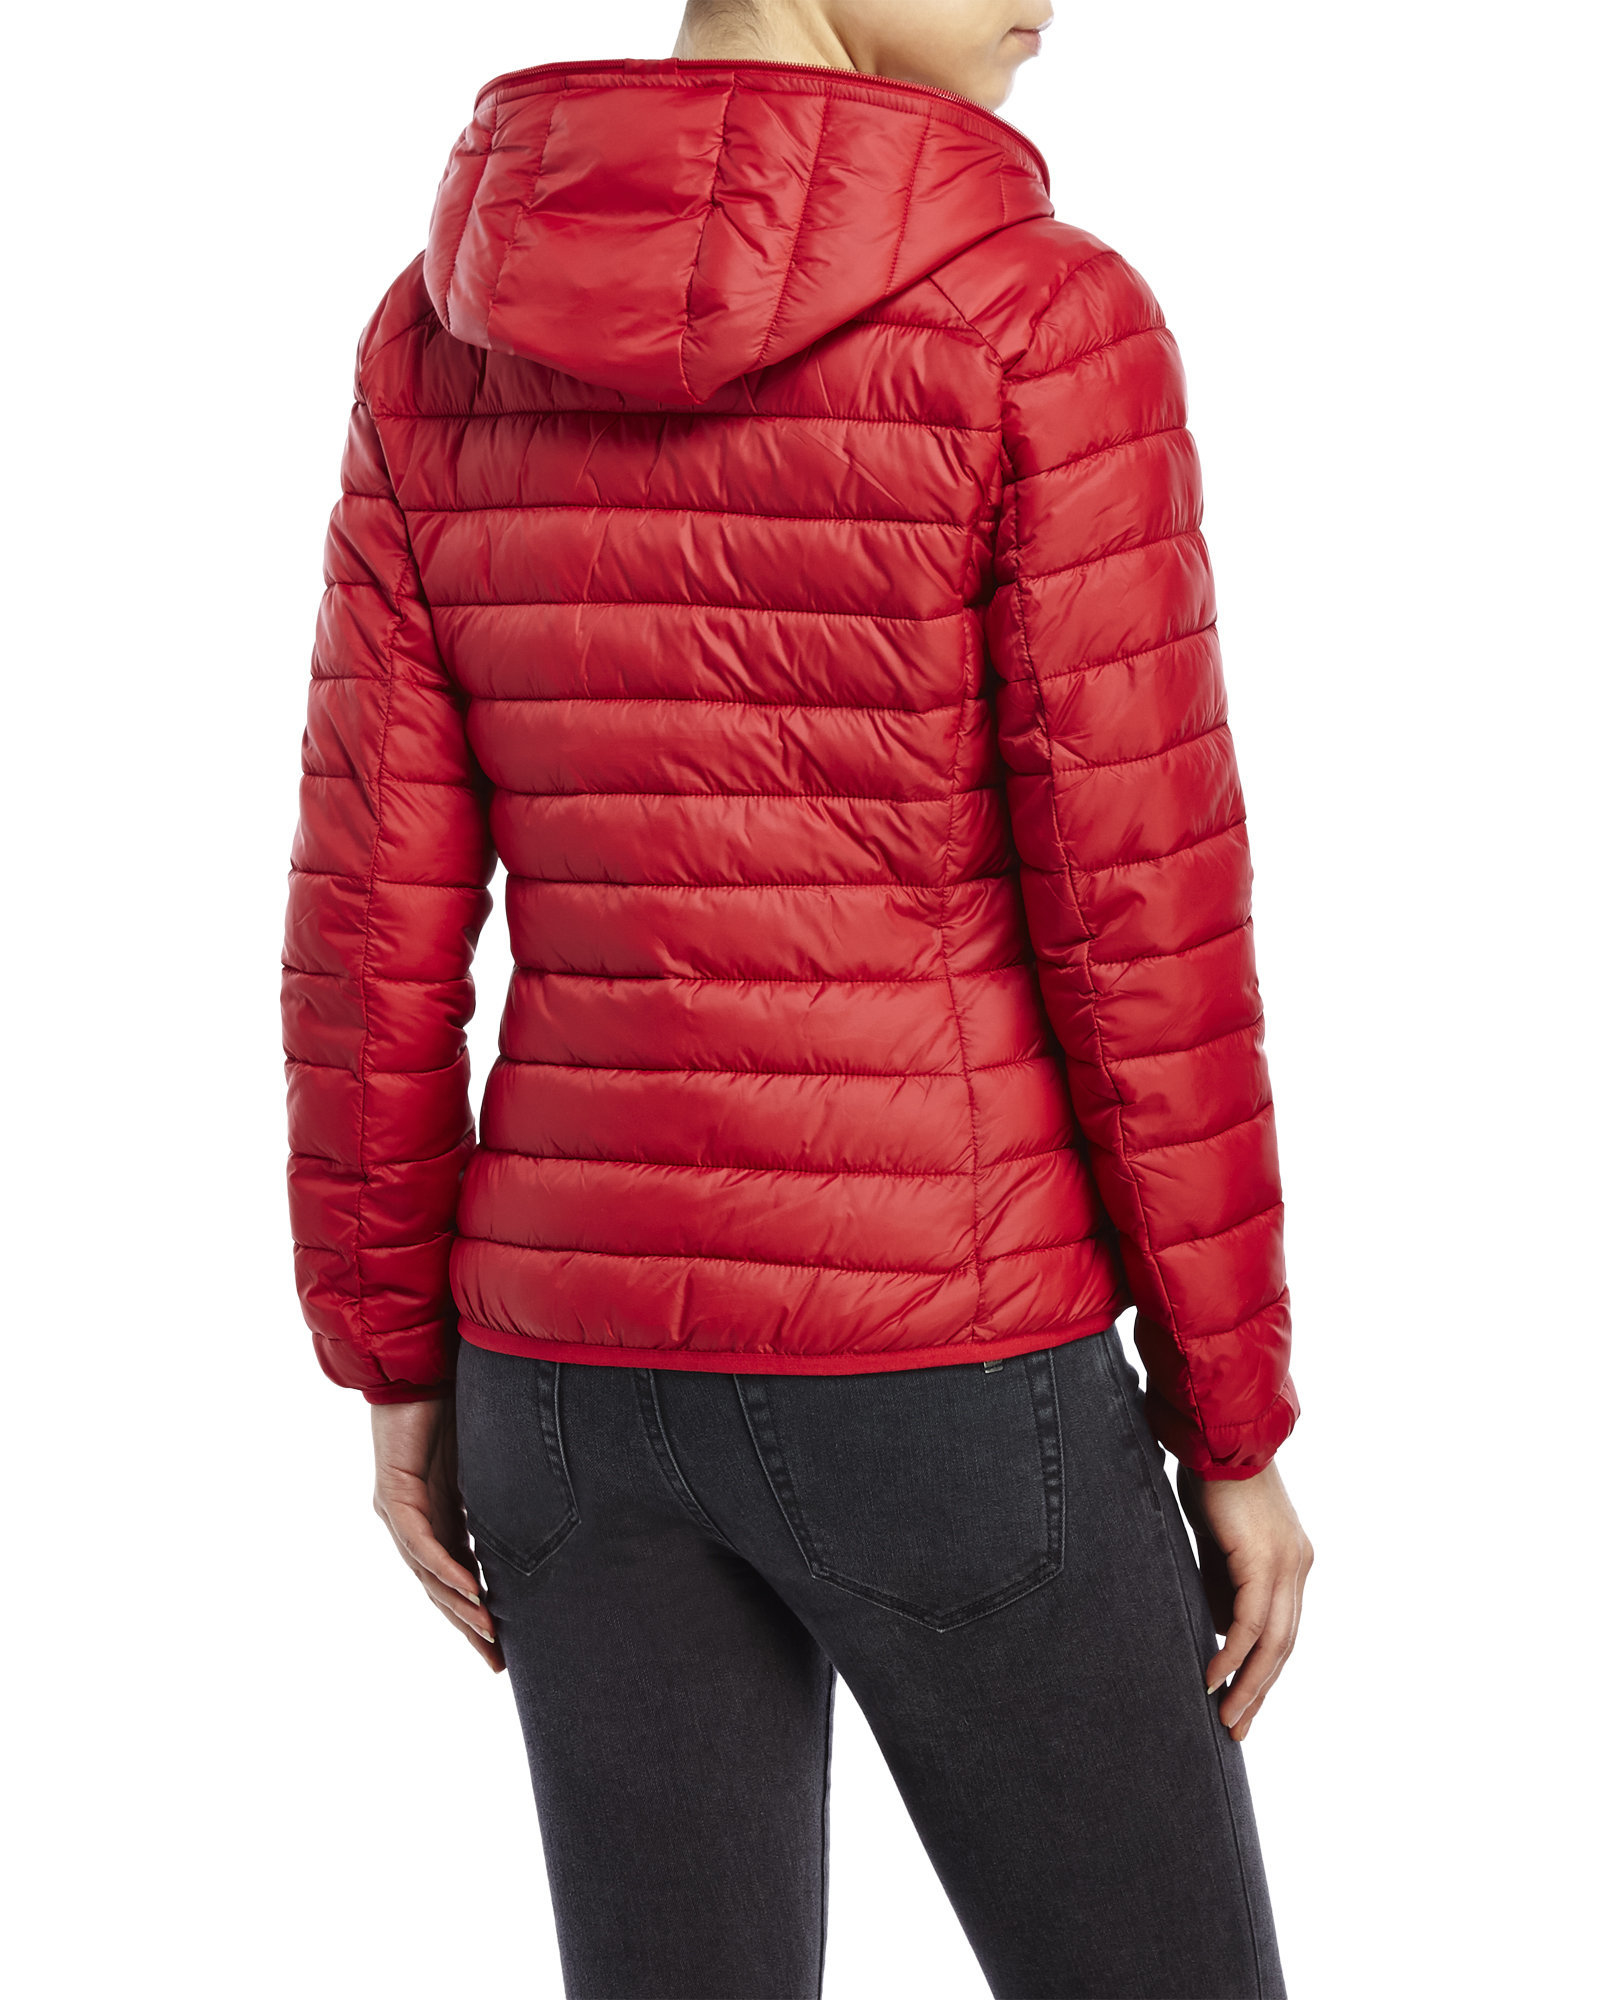 Lyst Save The Duck Packable Quilted Jacket With Hood In Red - Save The Duck